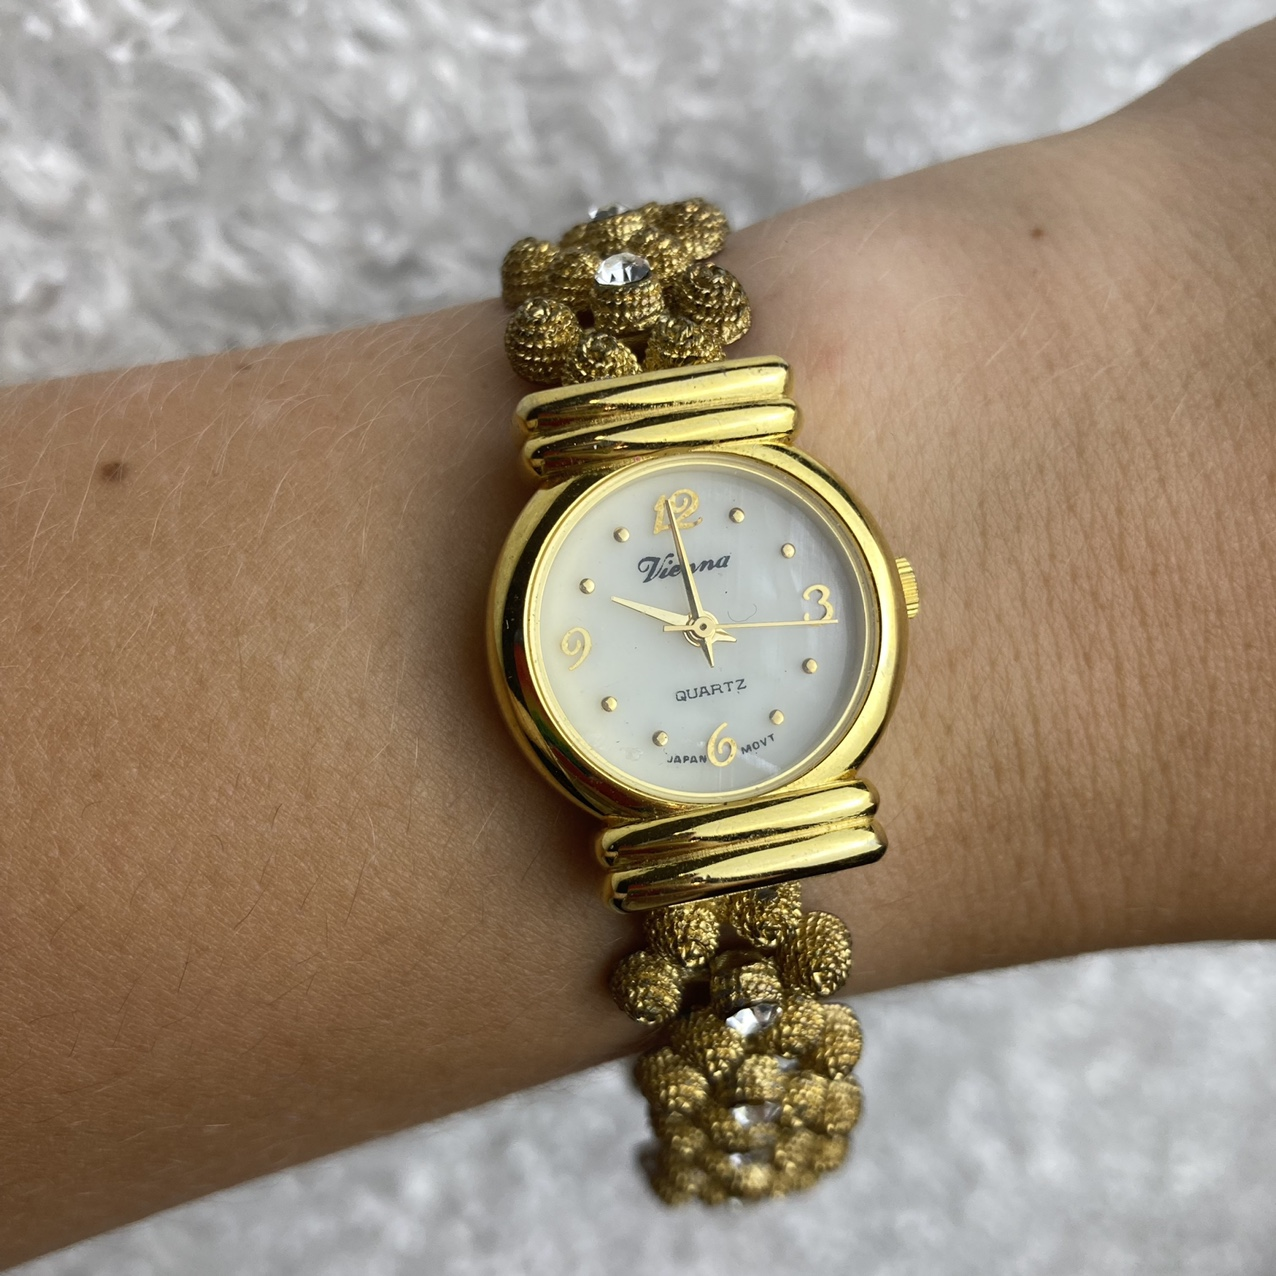 Product Image 1 - Vintage gold colored watch. Battery needs